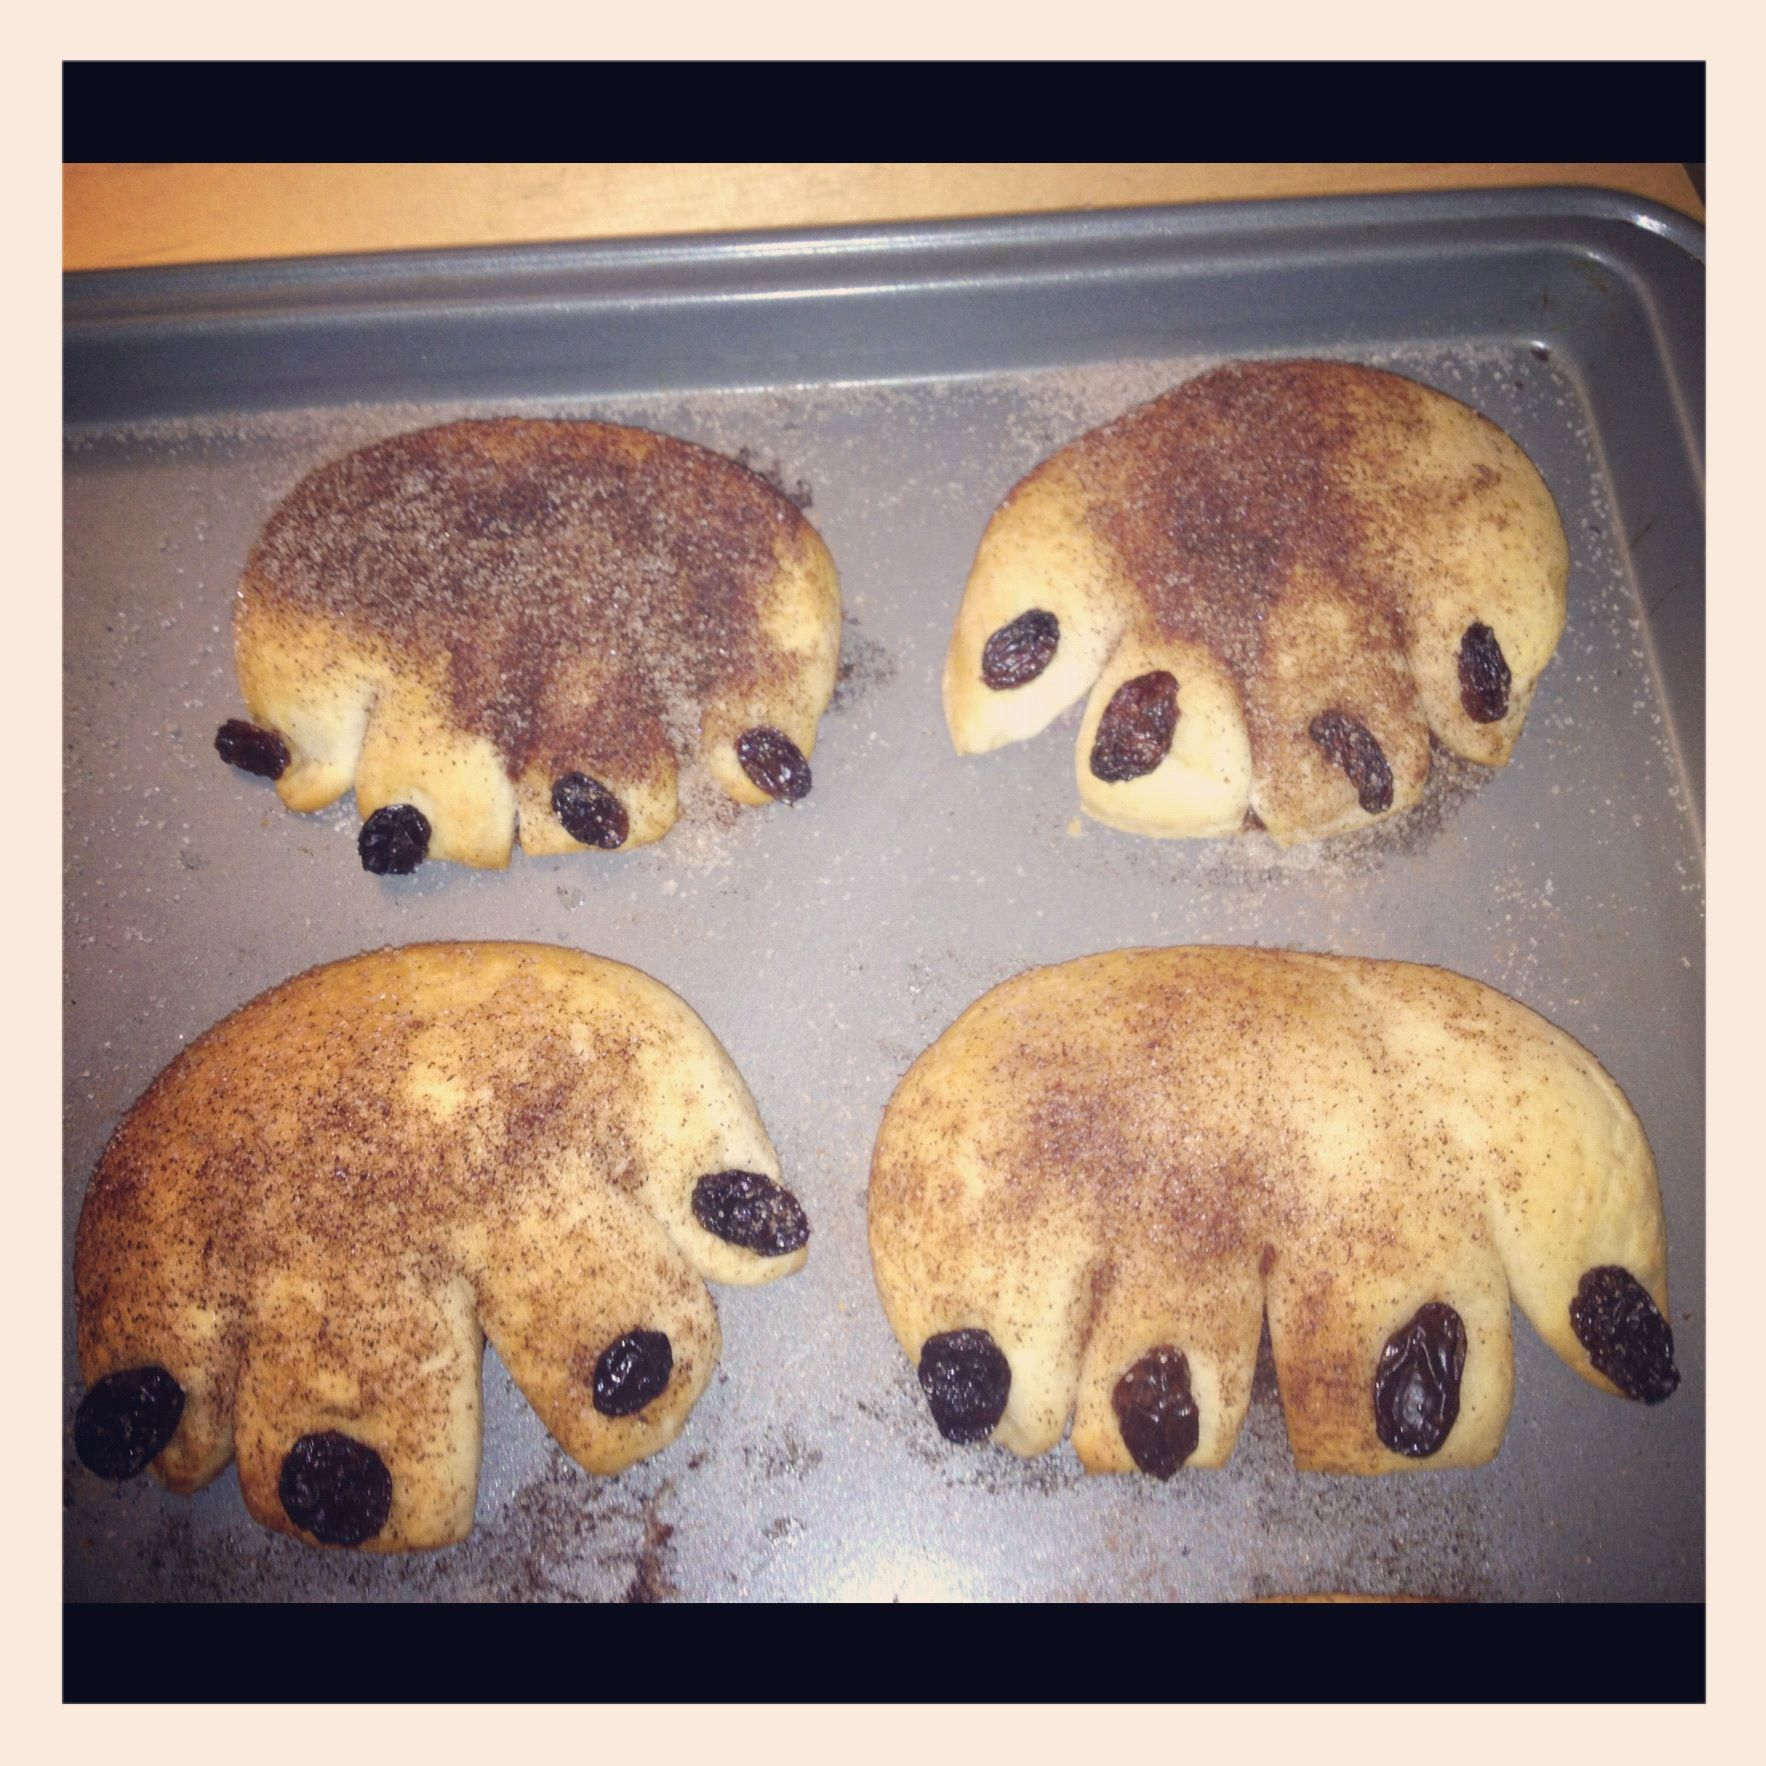 Hibernation Week Snack Bear Claws Biscuits Cut With Knife To Make Toes Add Raisins And